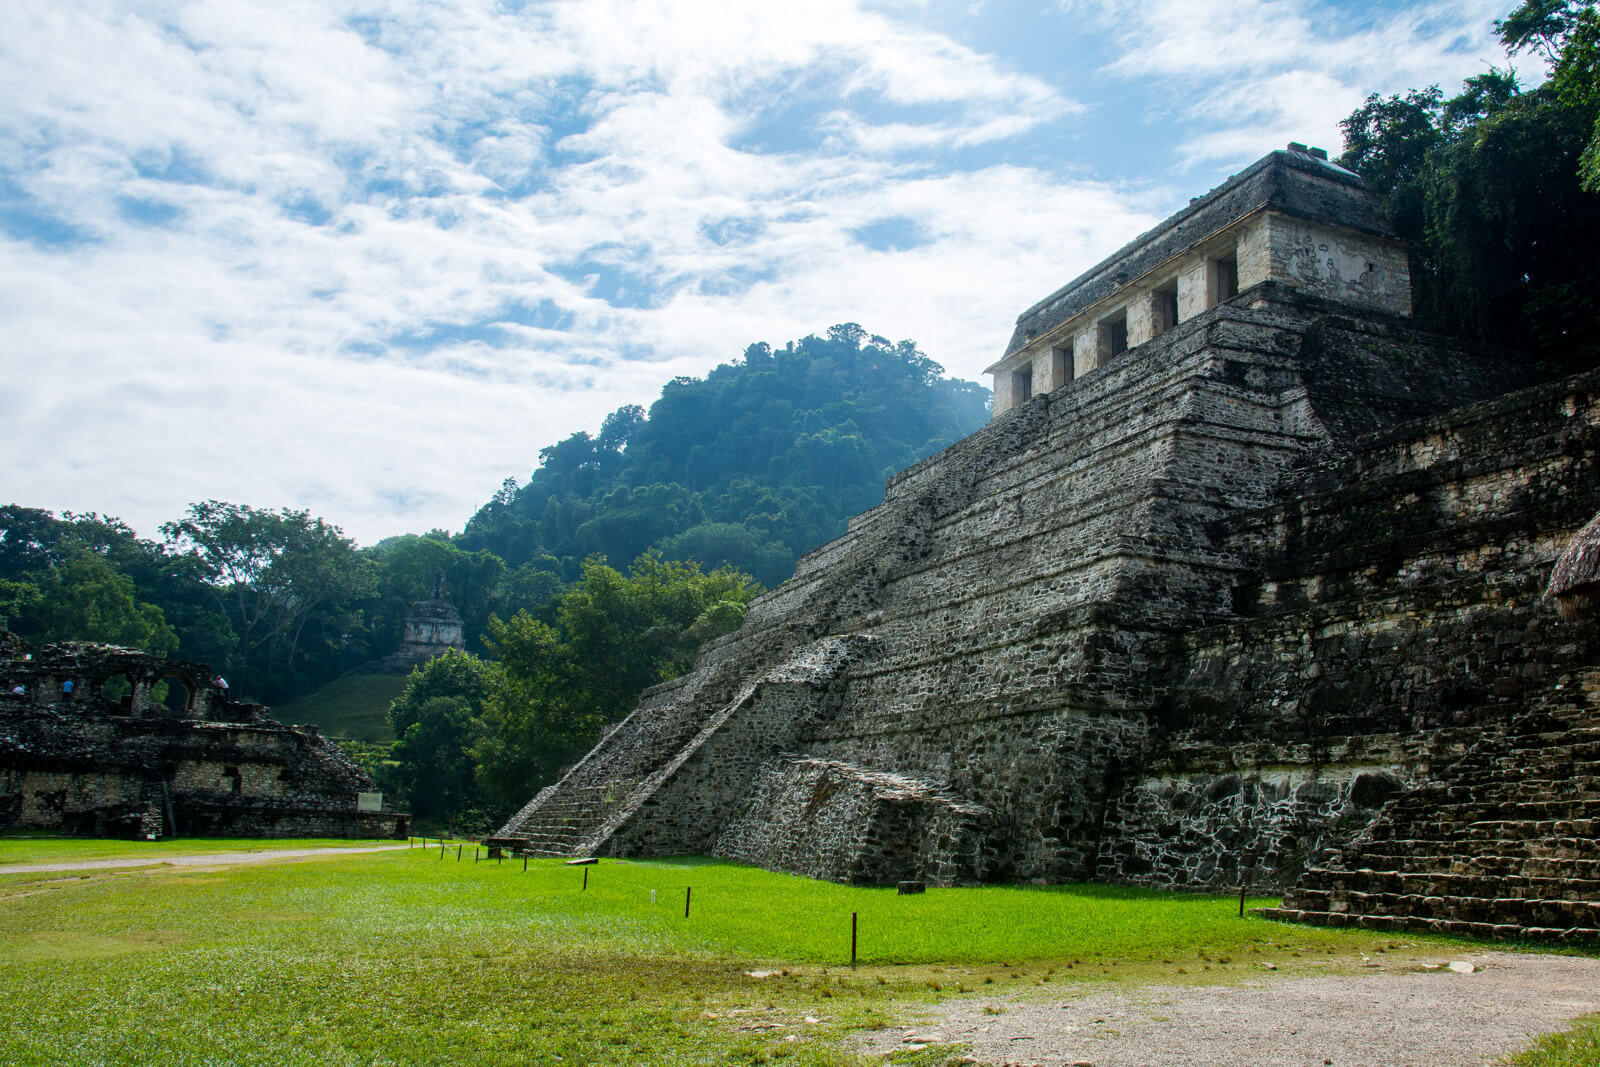 The majestic entrance to the ruins of Palenque